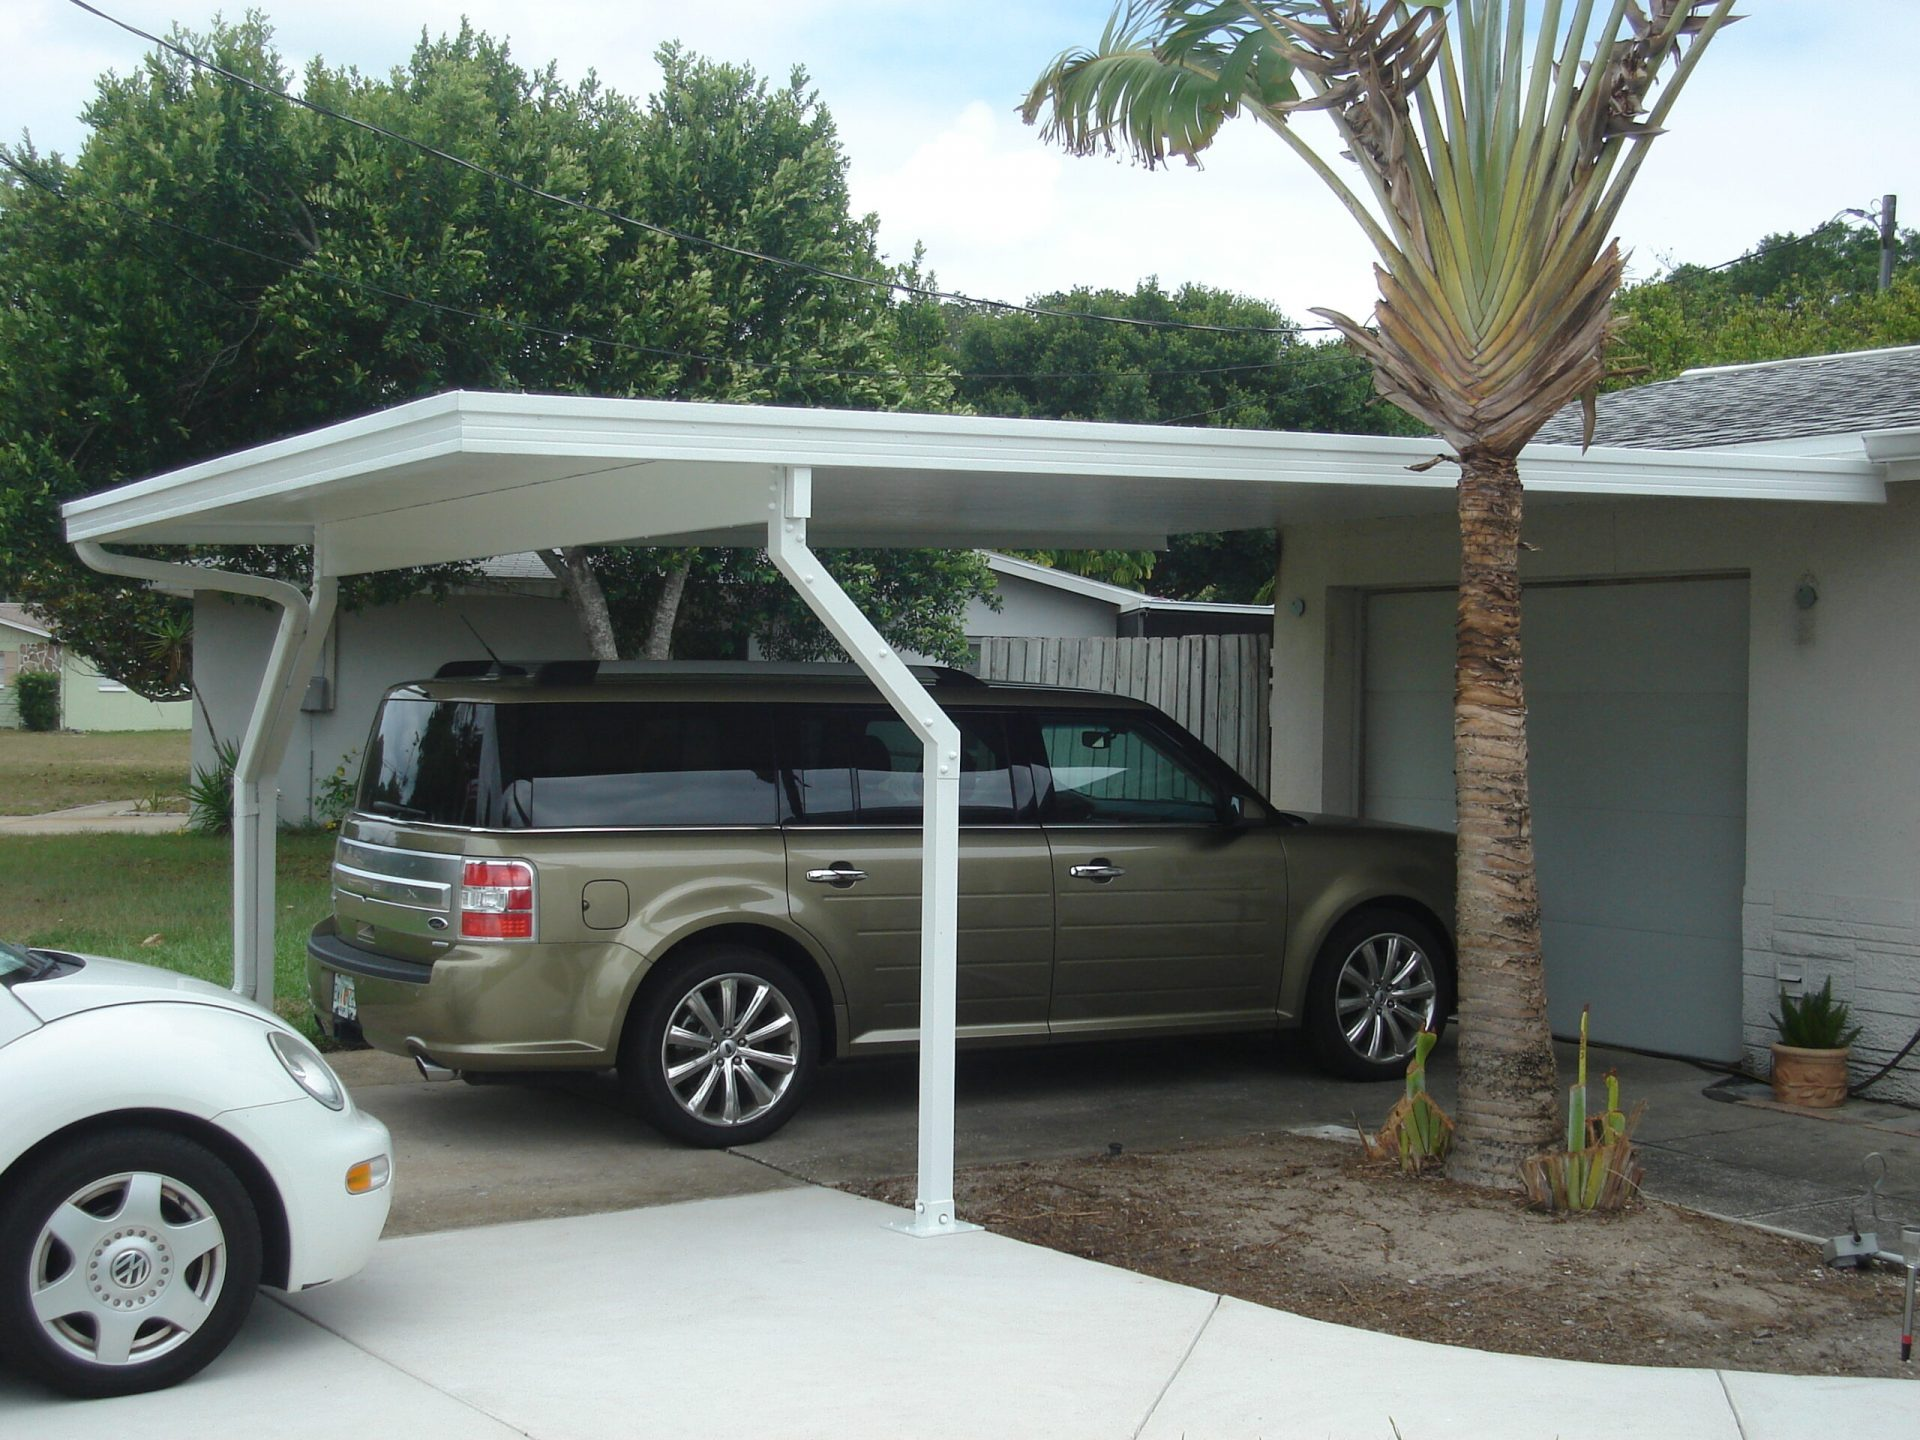 Home Depot Carport Screen : Carport canopies pyramid aluminum